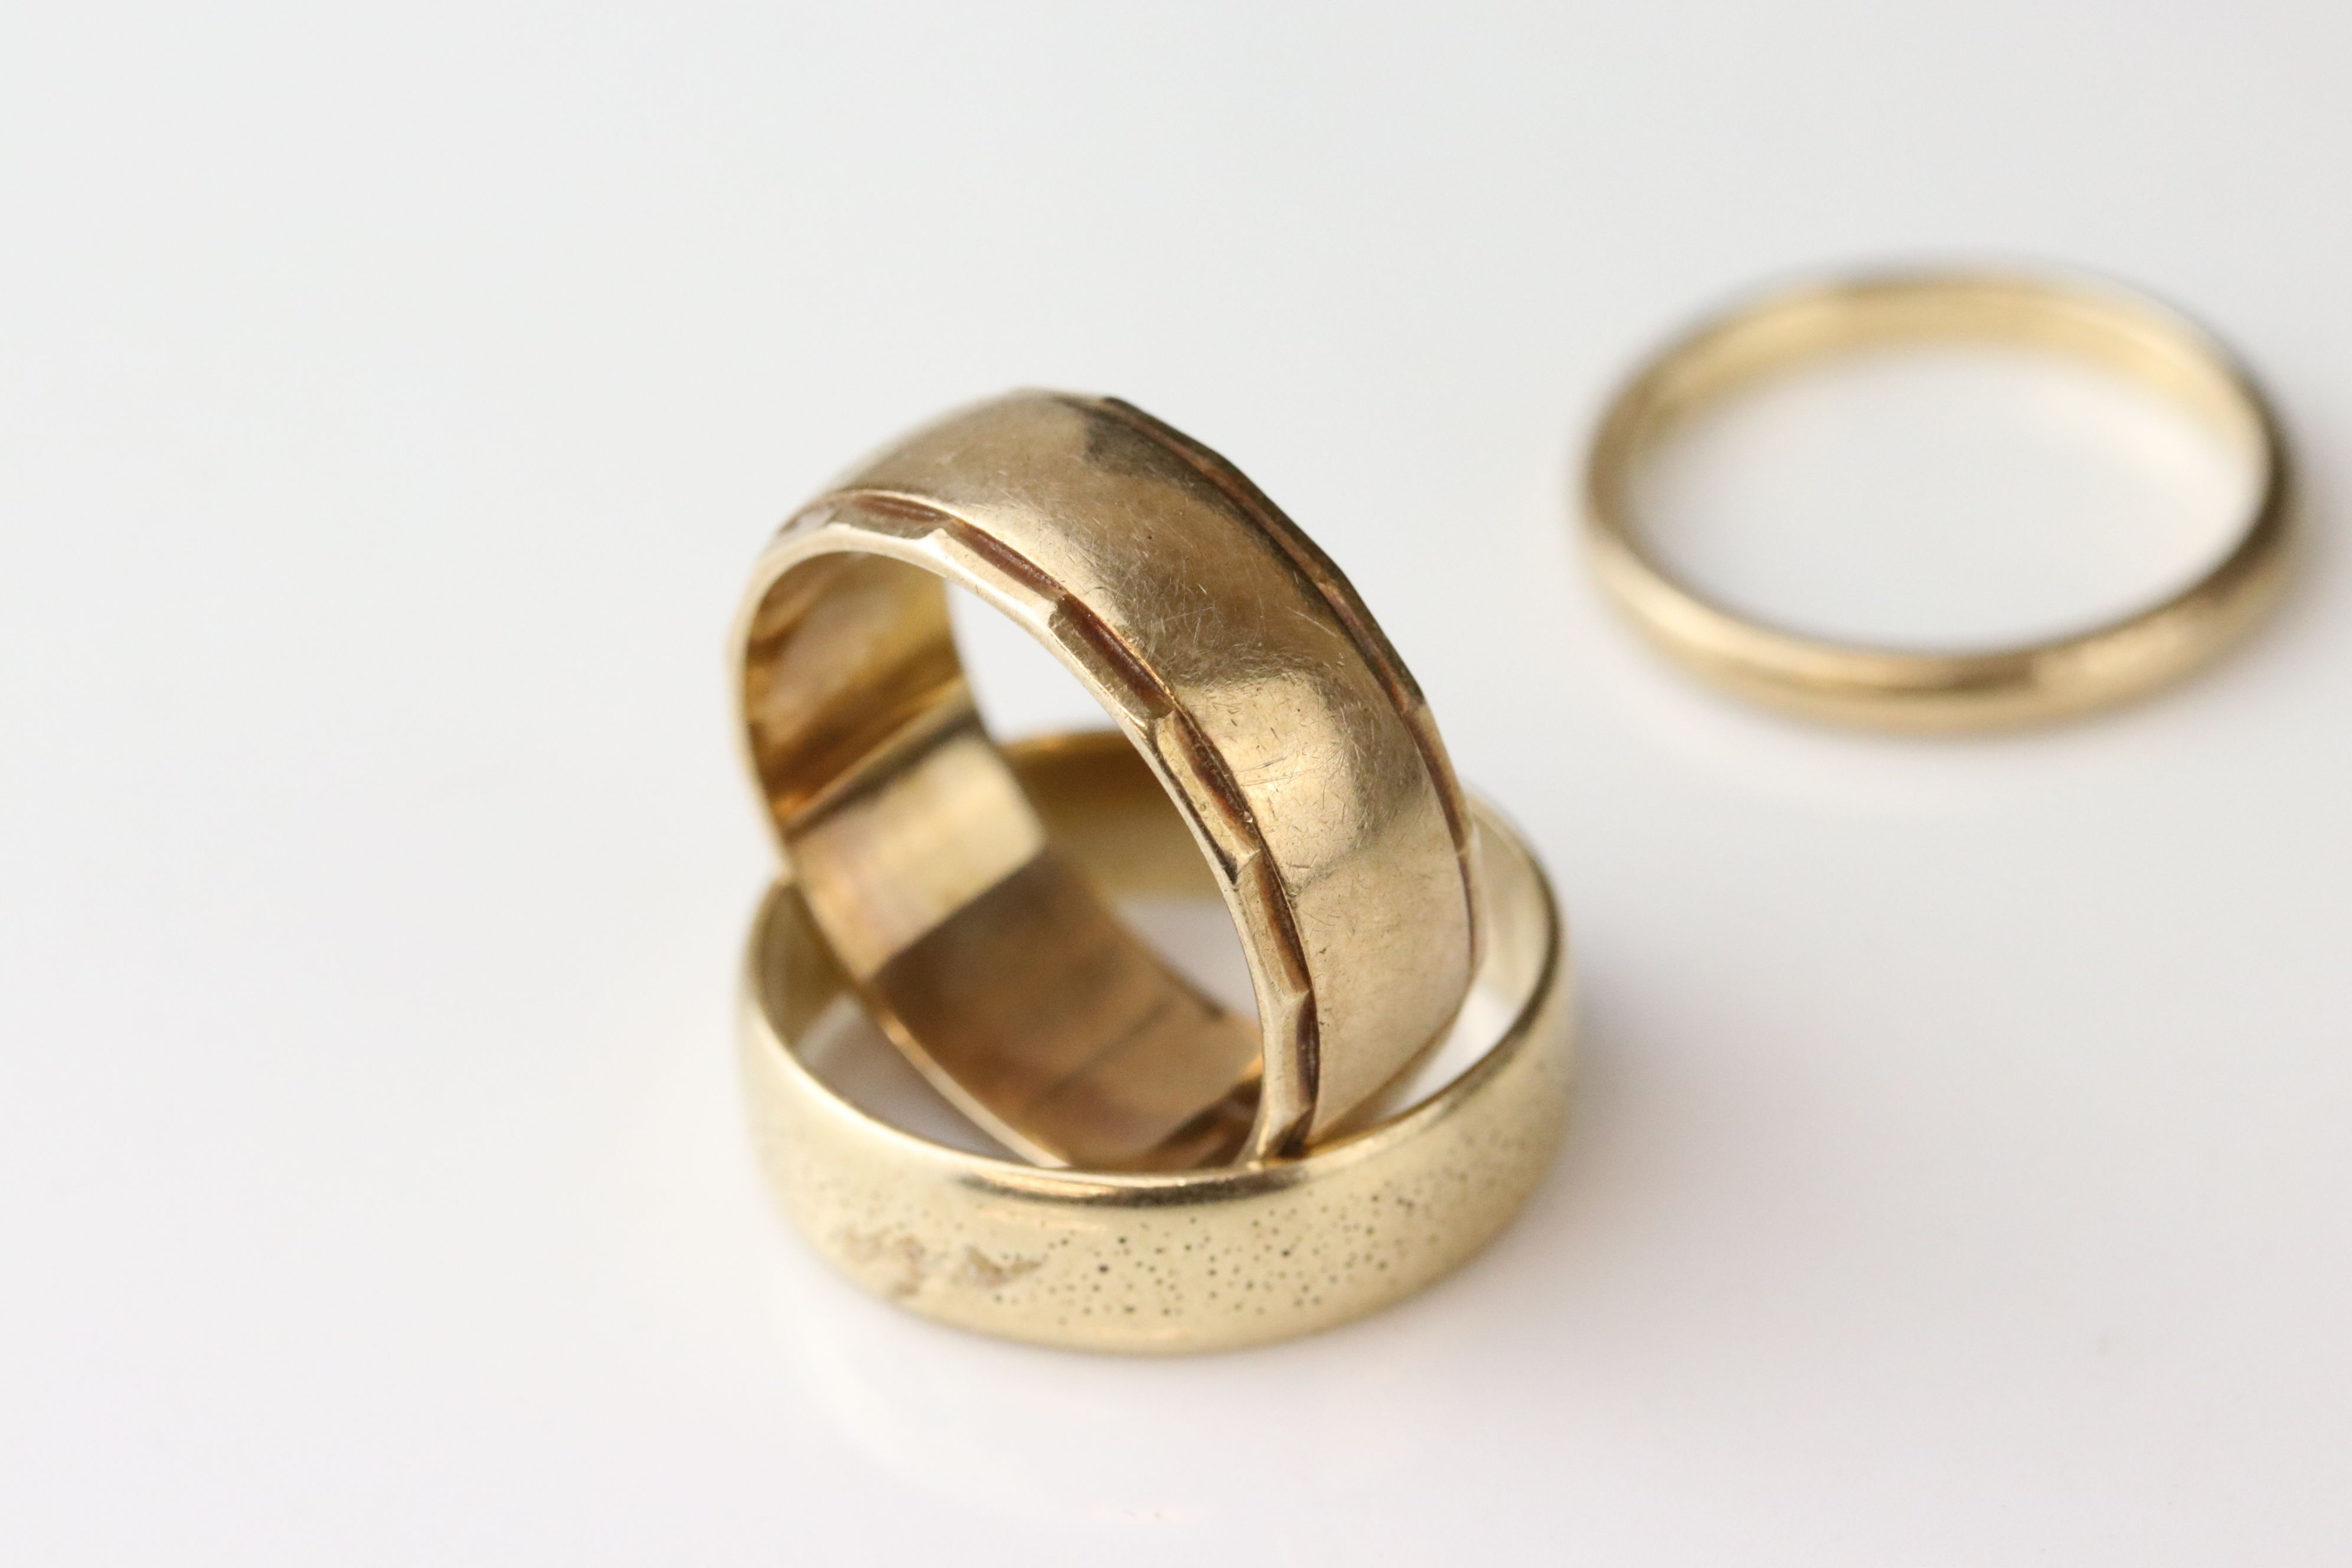 9ct yellow gold wedding band, width approx 2mm, ring size M½, together with a 9ct yellow gold - Image 2 of 5